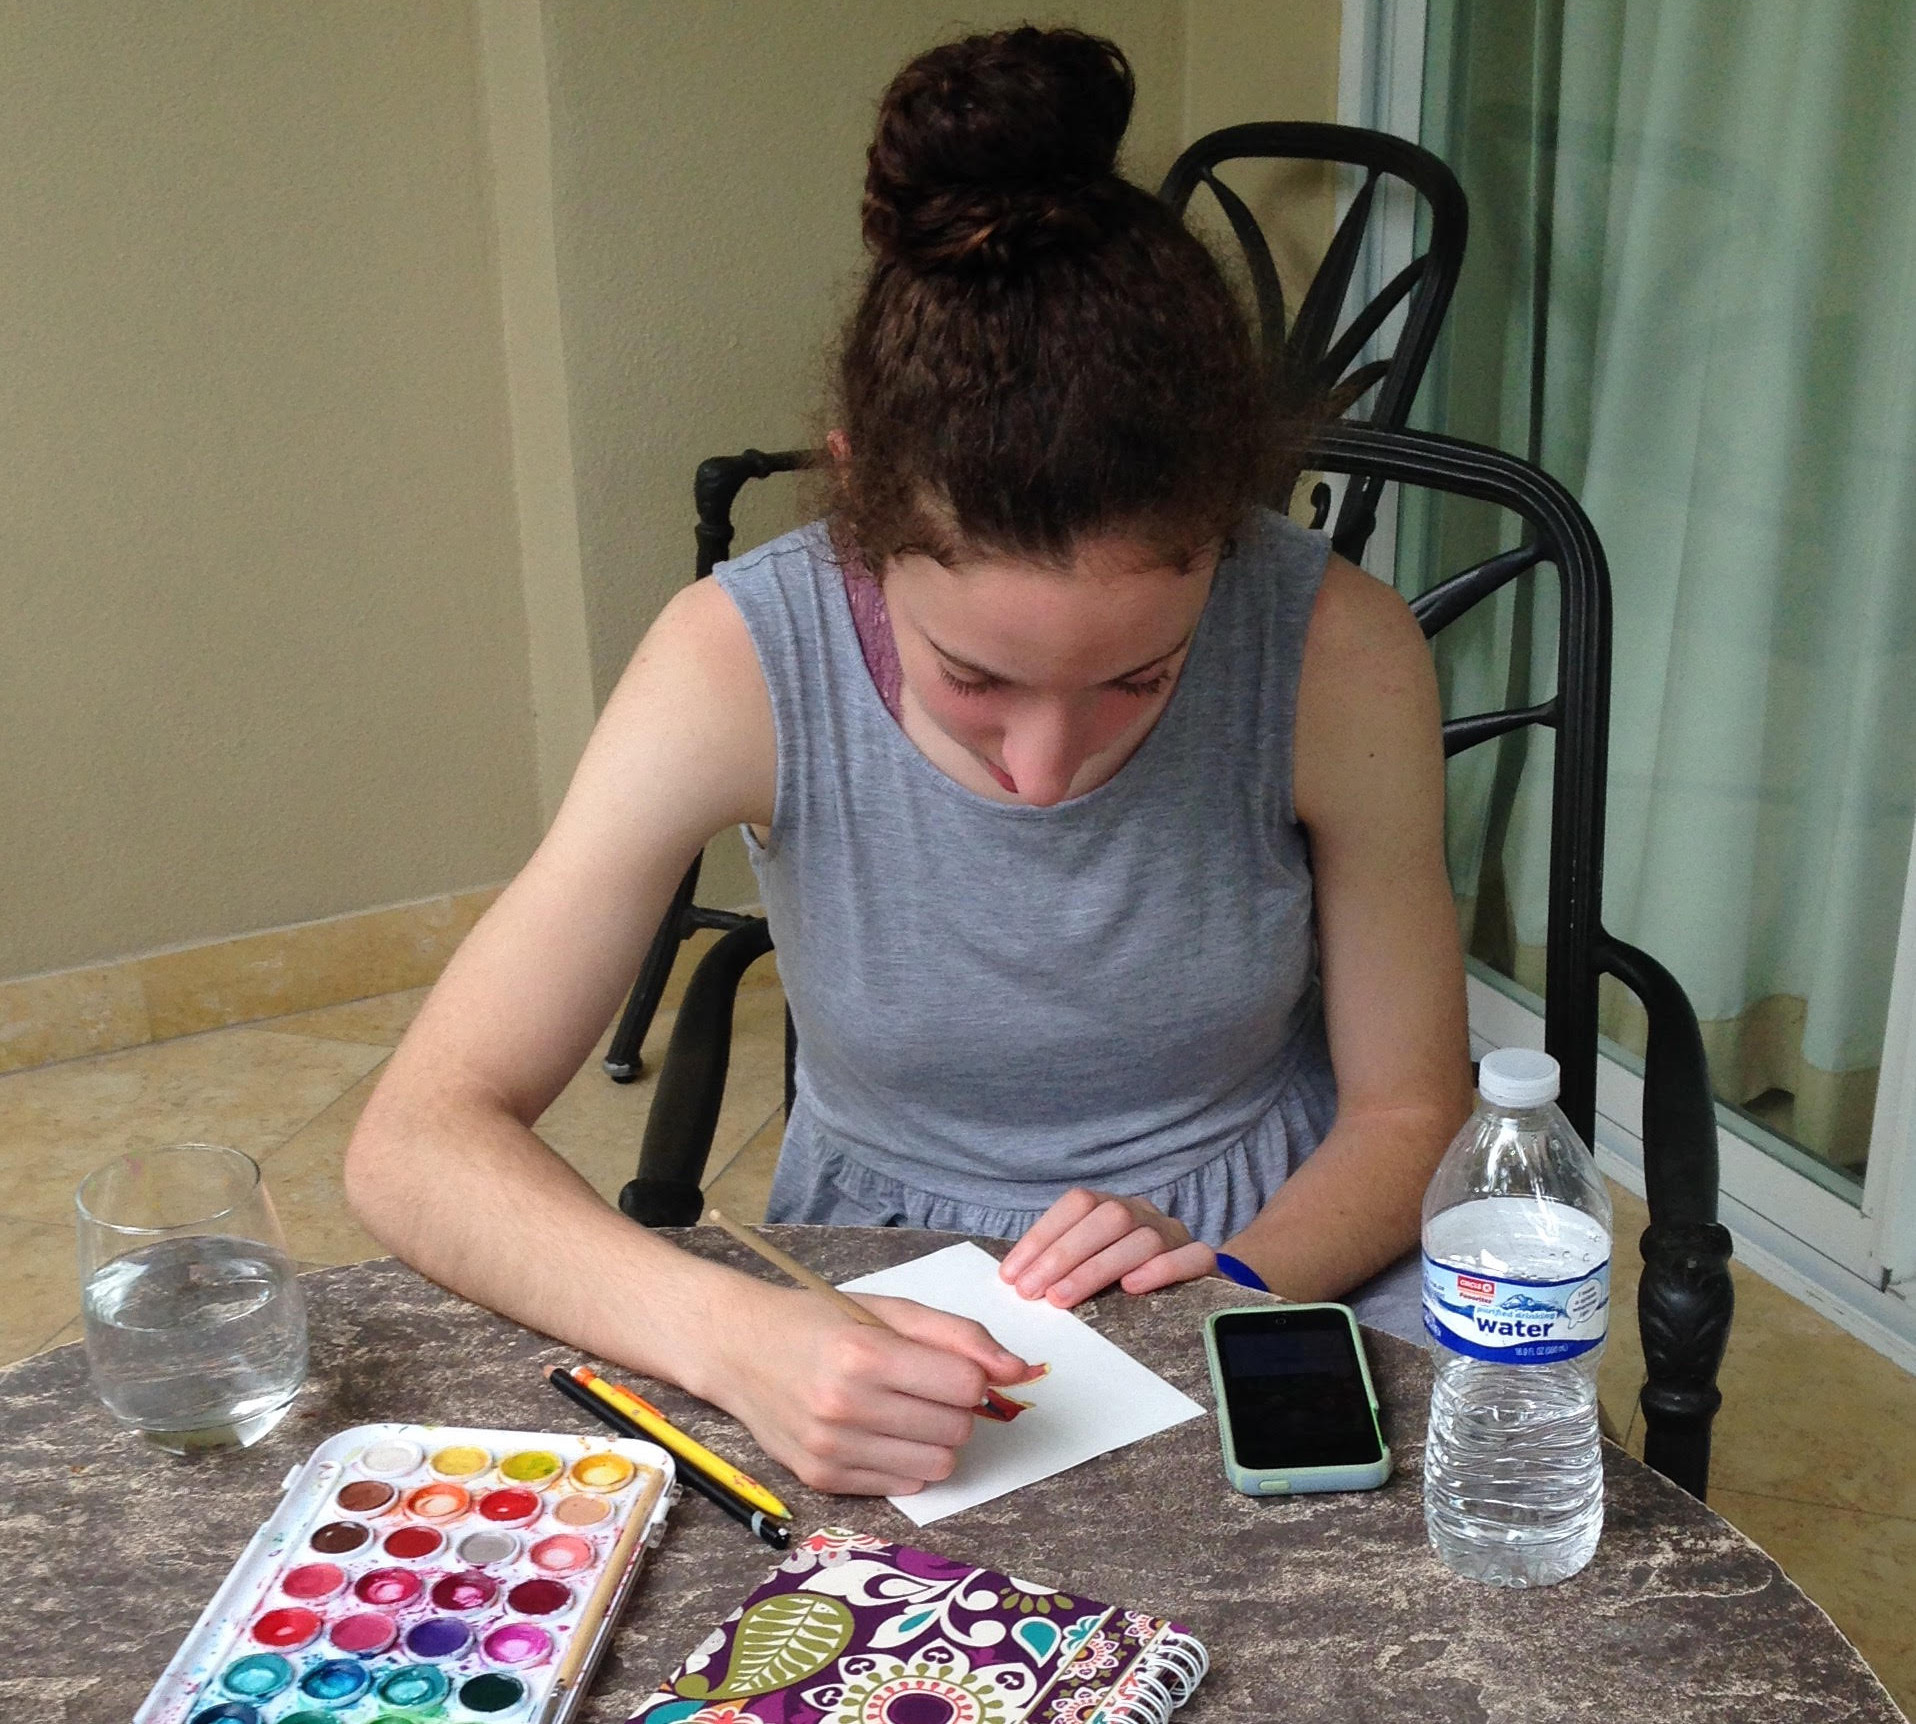 Being Creative to Cope with Juvenile Arthritis